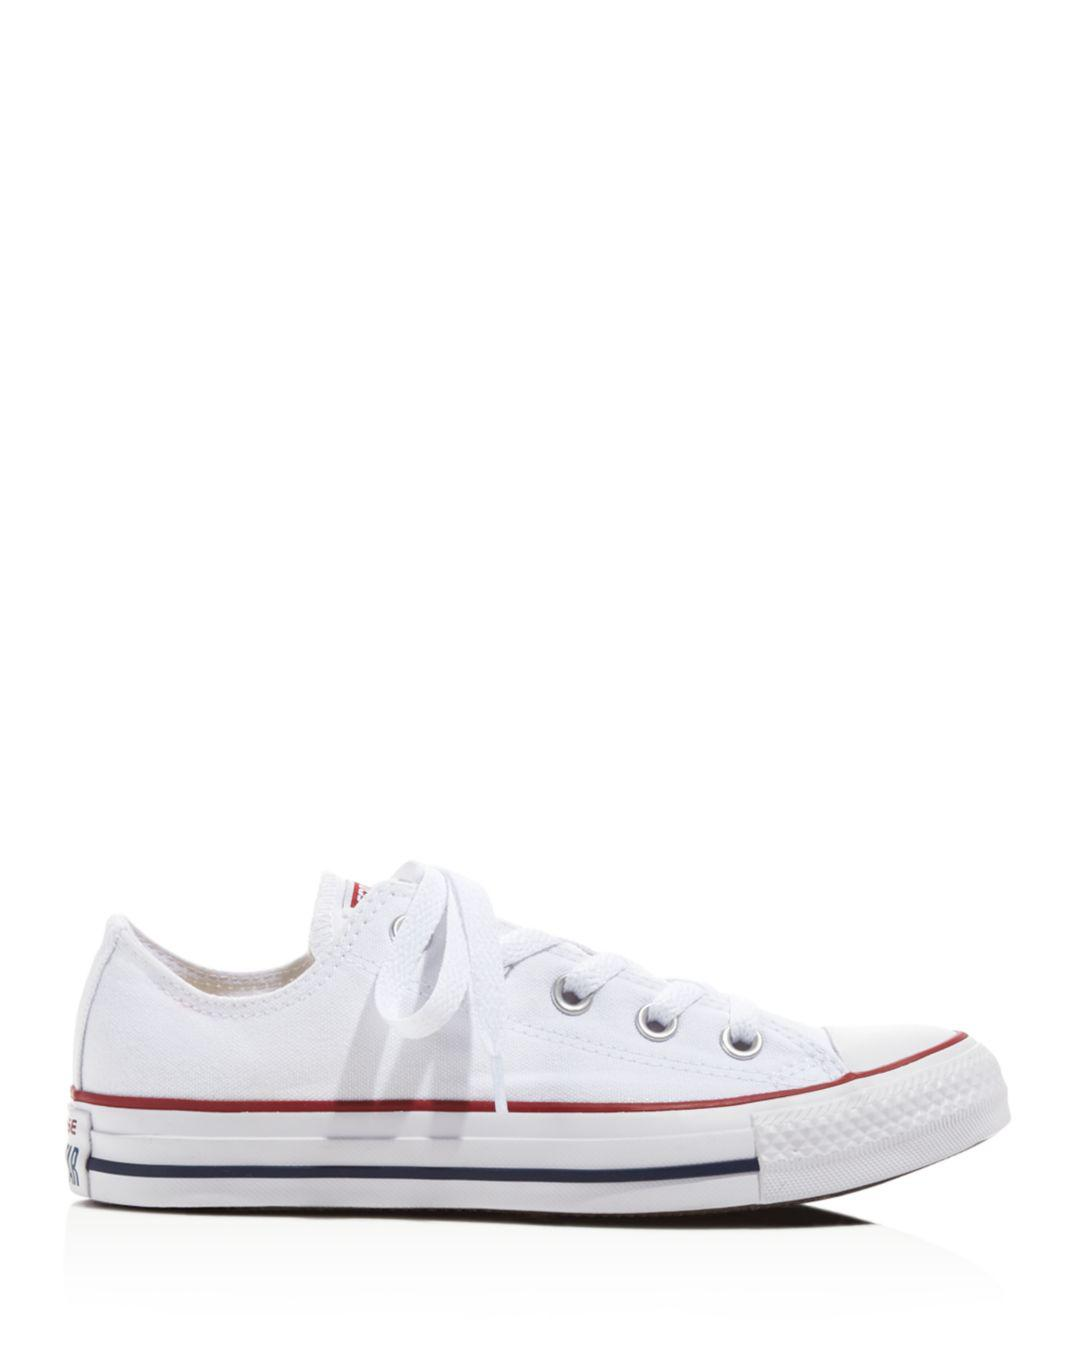 b4b9fad4da5a8c Lyst - Converse Women s Chuck Taylor All Star Lace Up Sneakers in White